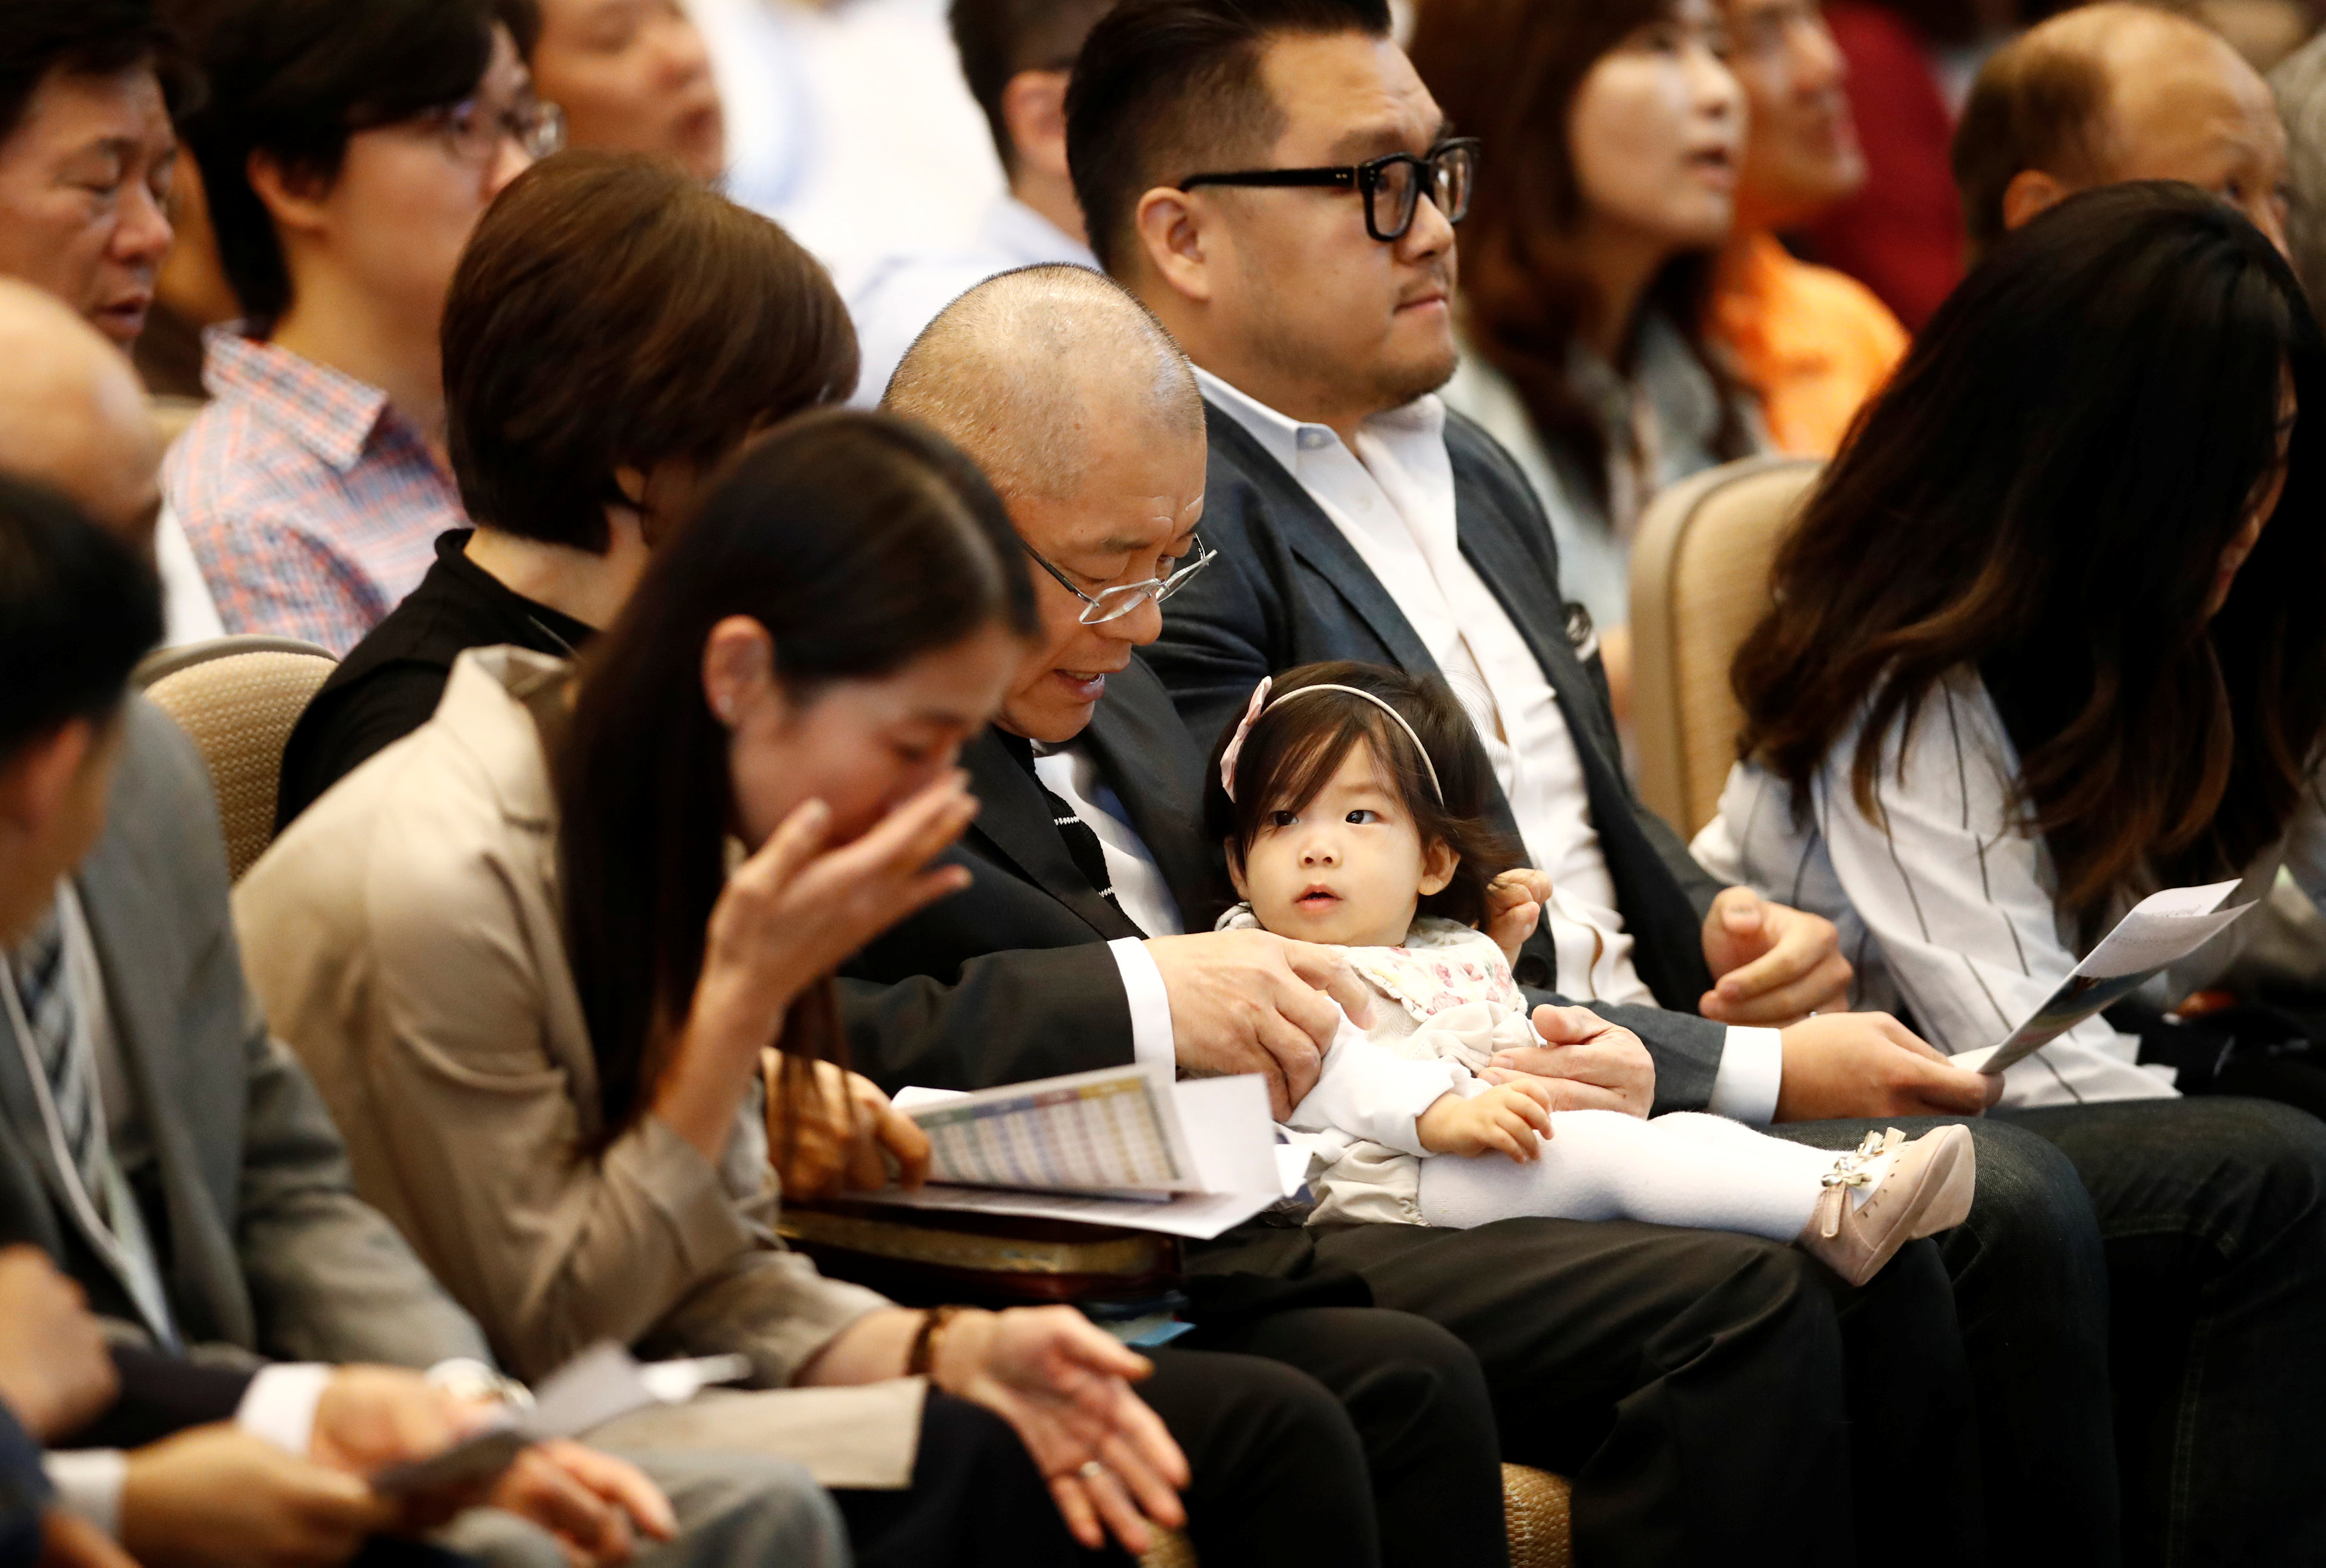 Pastor Hyeon Soo Lim, who returned to Canada from North Korea after the DPRK released Lim on August 9, after being held for 31 months, holds his granddaughter beside his son James, at the Light Presbyterian Church in Mississauga, Ontario, Canada on August 13, 2017.    (REUTERS/Mark Blinch)